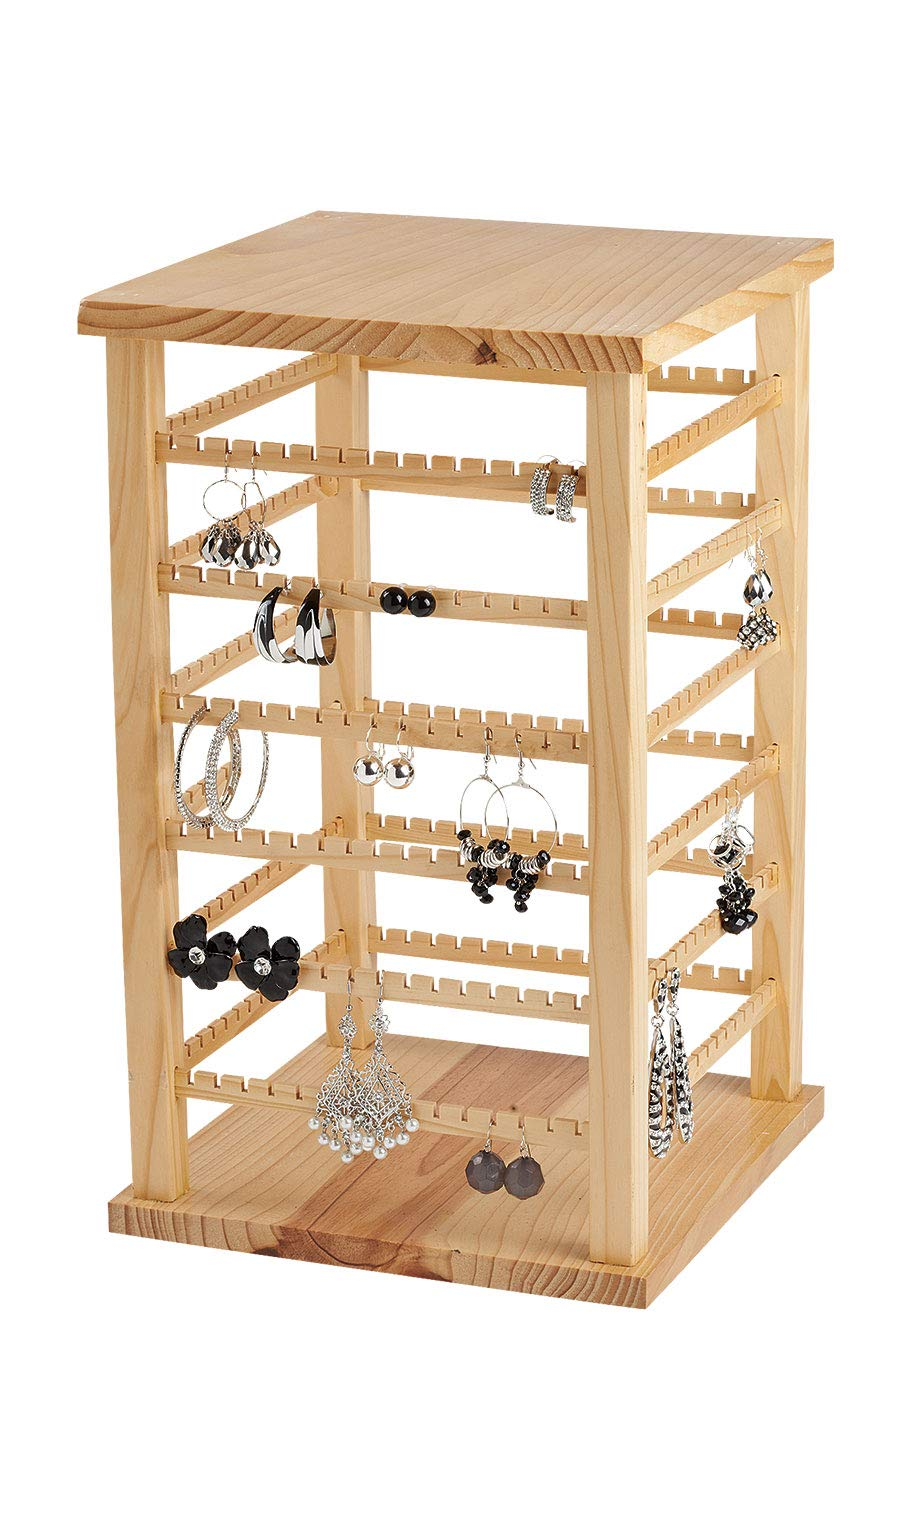 Large Wood Rotating Earring Display - 9 3/8''W x 9 3/8''D x 16 3/8''H - Holds 168 Pairs of Earrings by SSWBasics